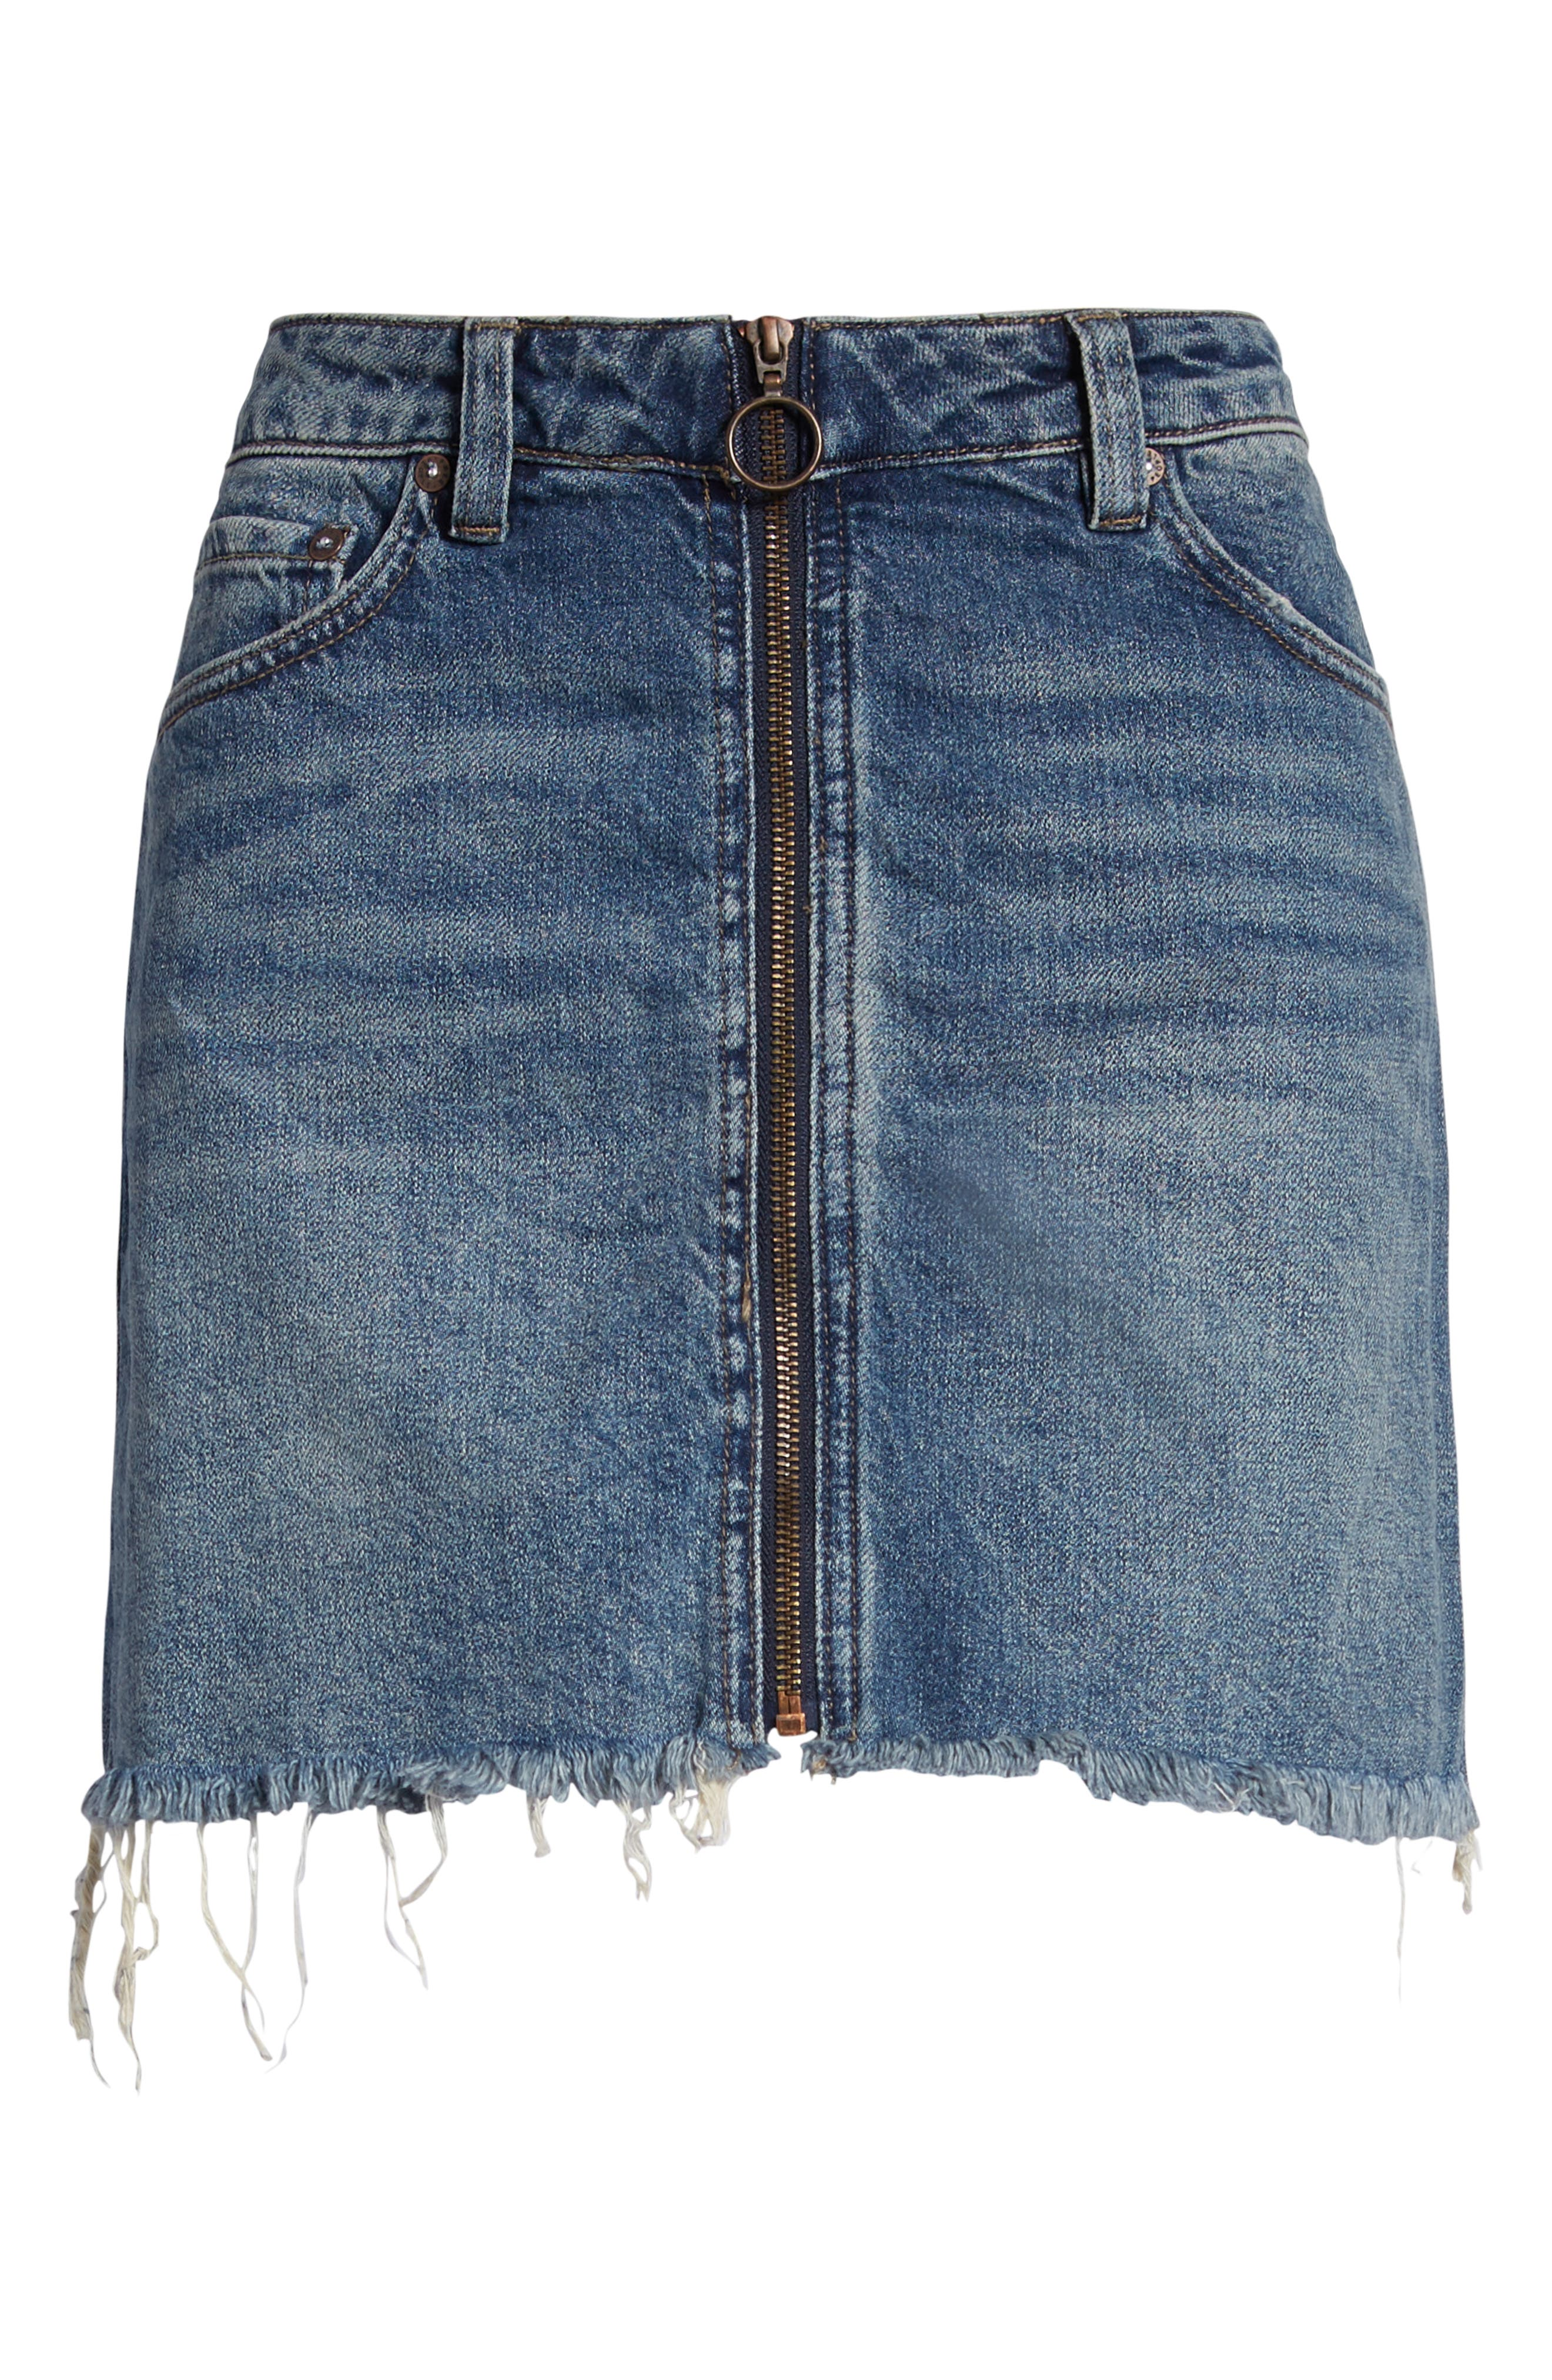 FREE PEOPLE, We the Free by Free People Zip It Up Denim Miniskirt, Alternate thumbnail 7, color, BLUE